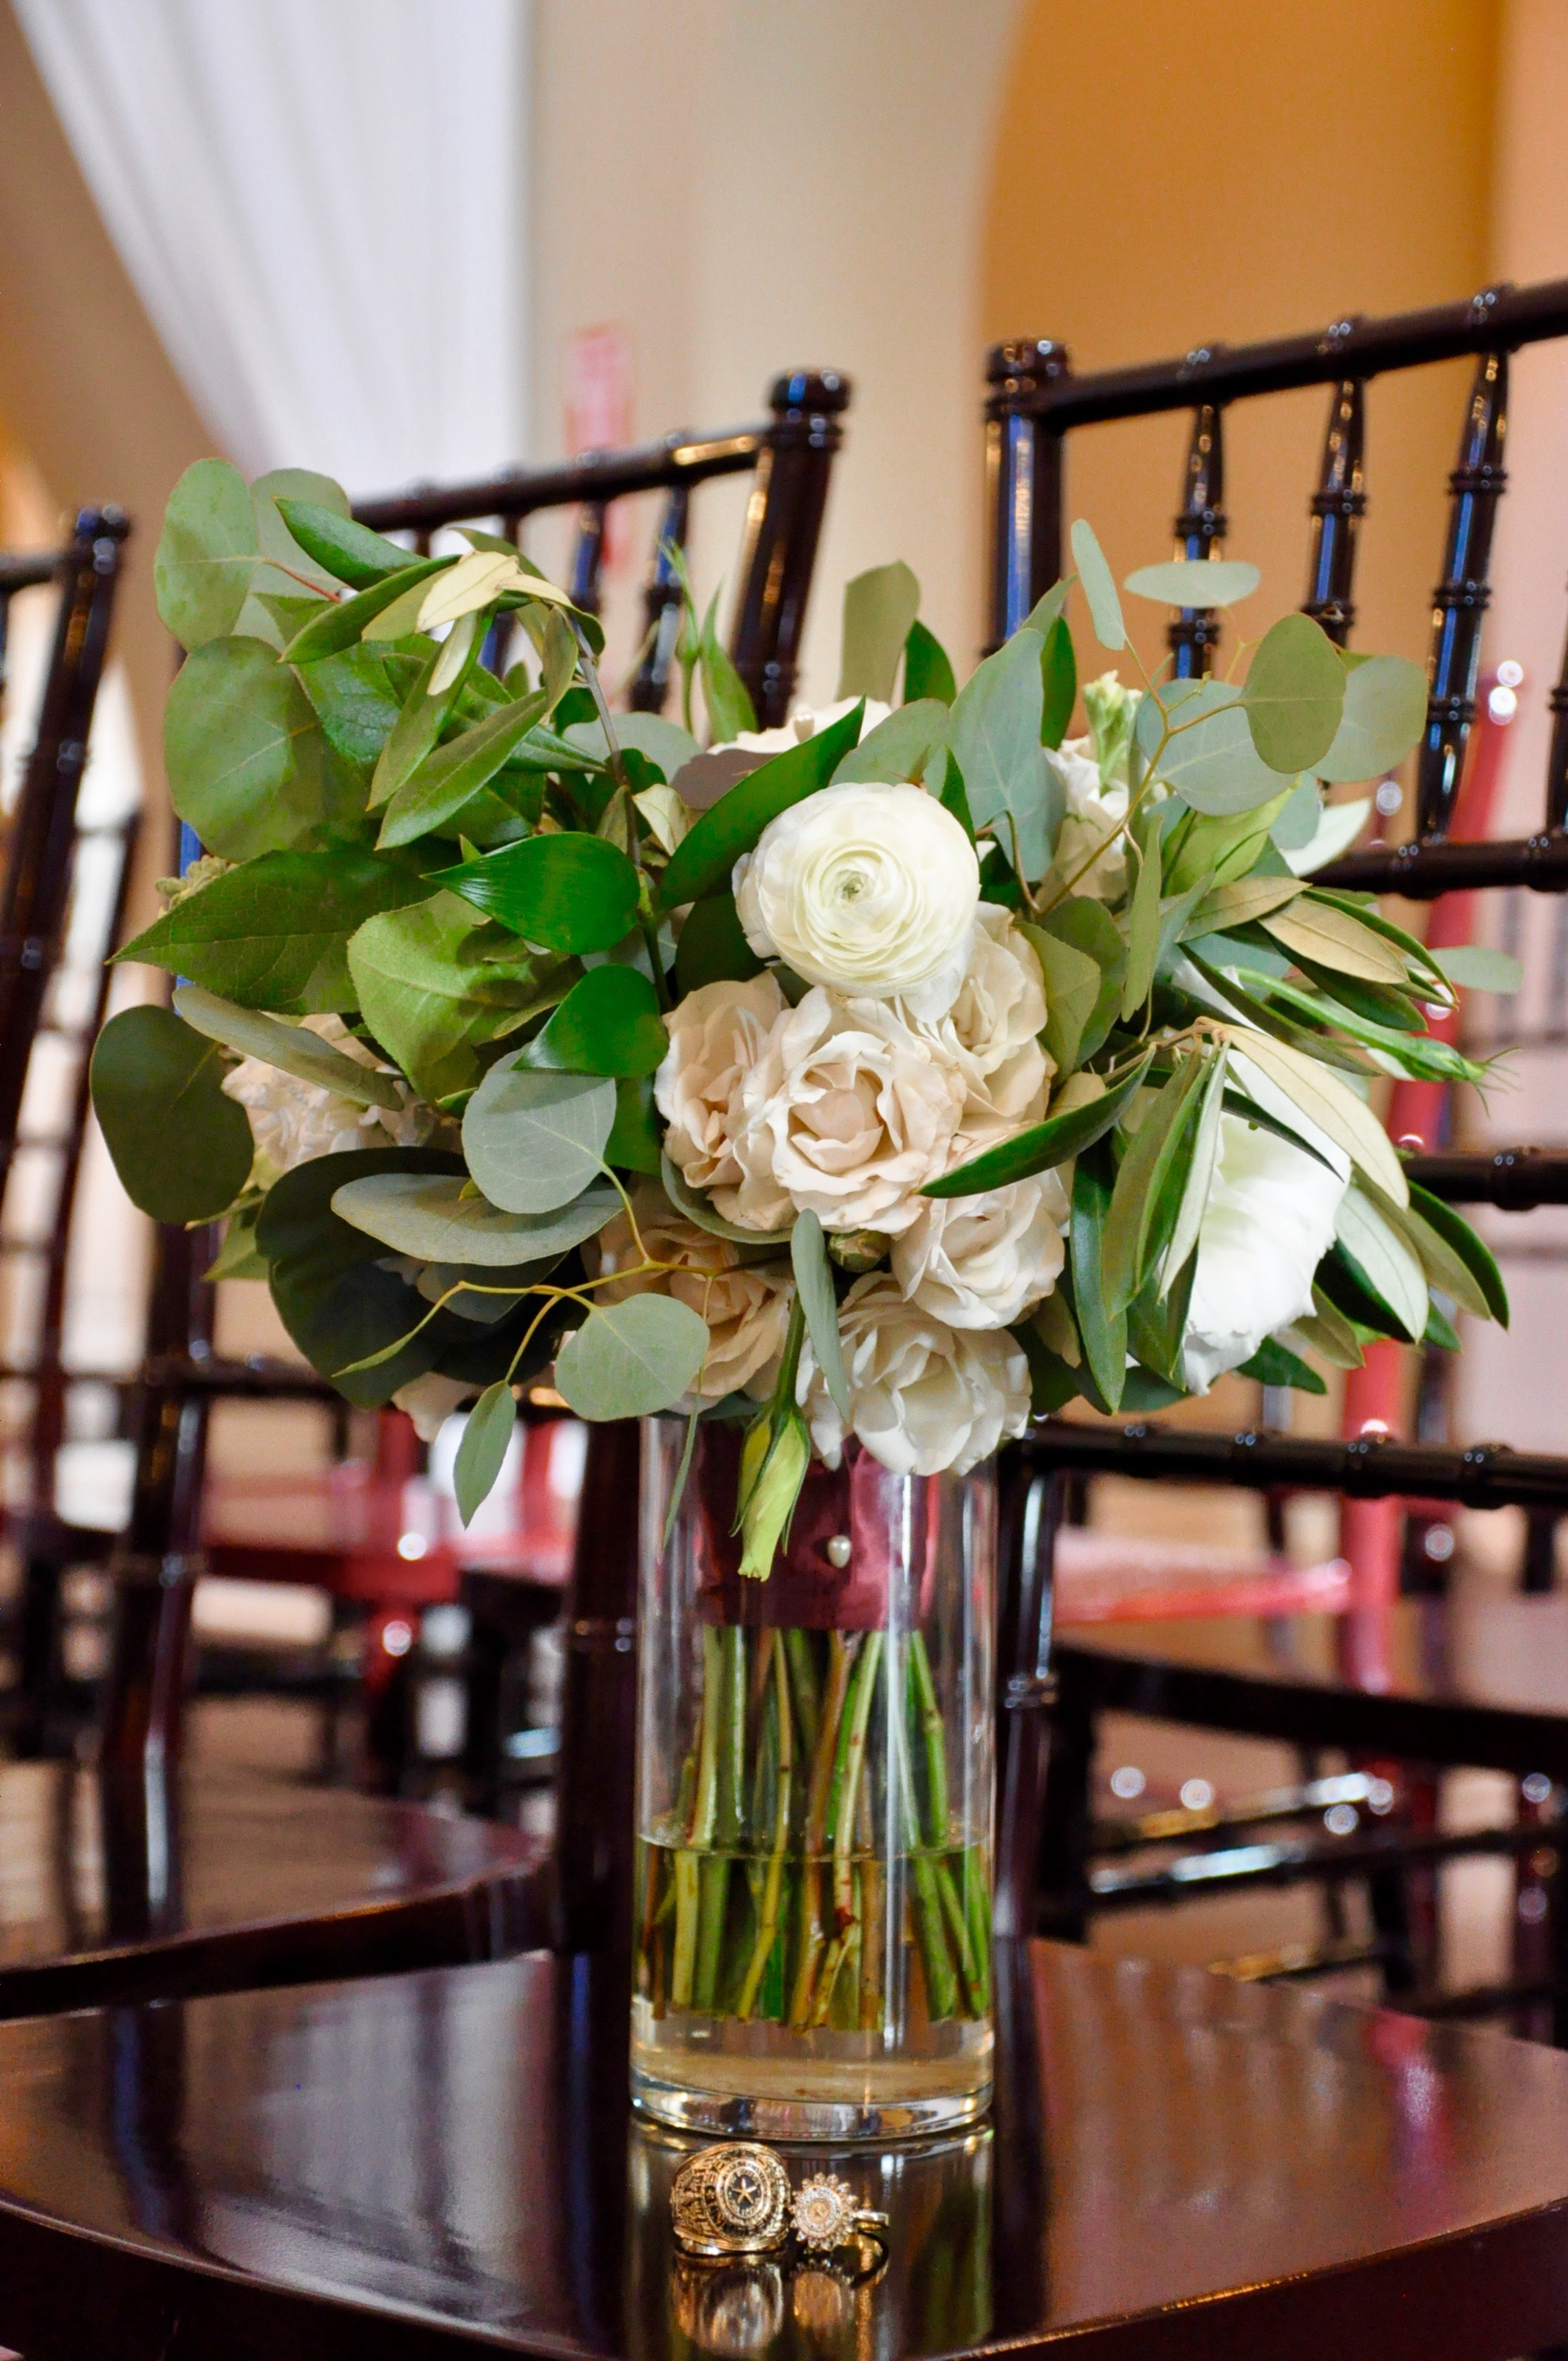 lizzie bee's flower shoppe, dallas wedding flowers, bridal flowers in dfw, heidi lockhart somes photography, the castle at rockwall, wedding tips, dallas bride